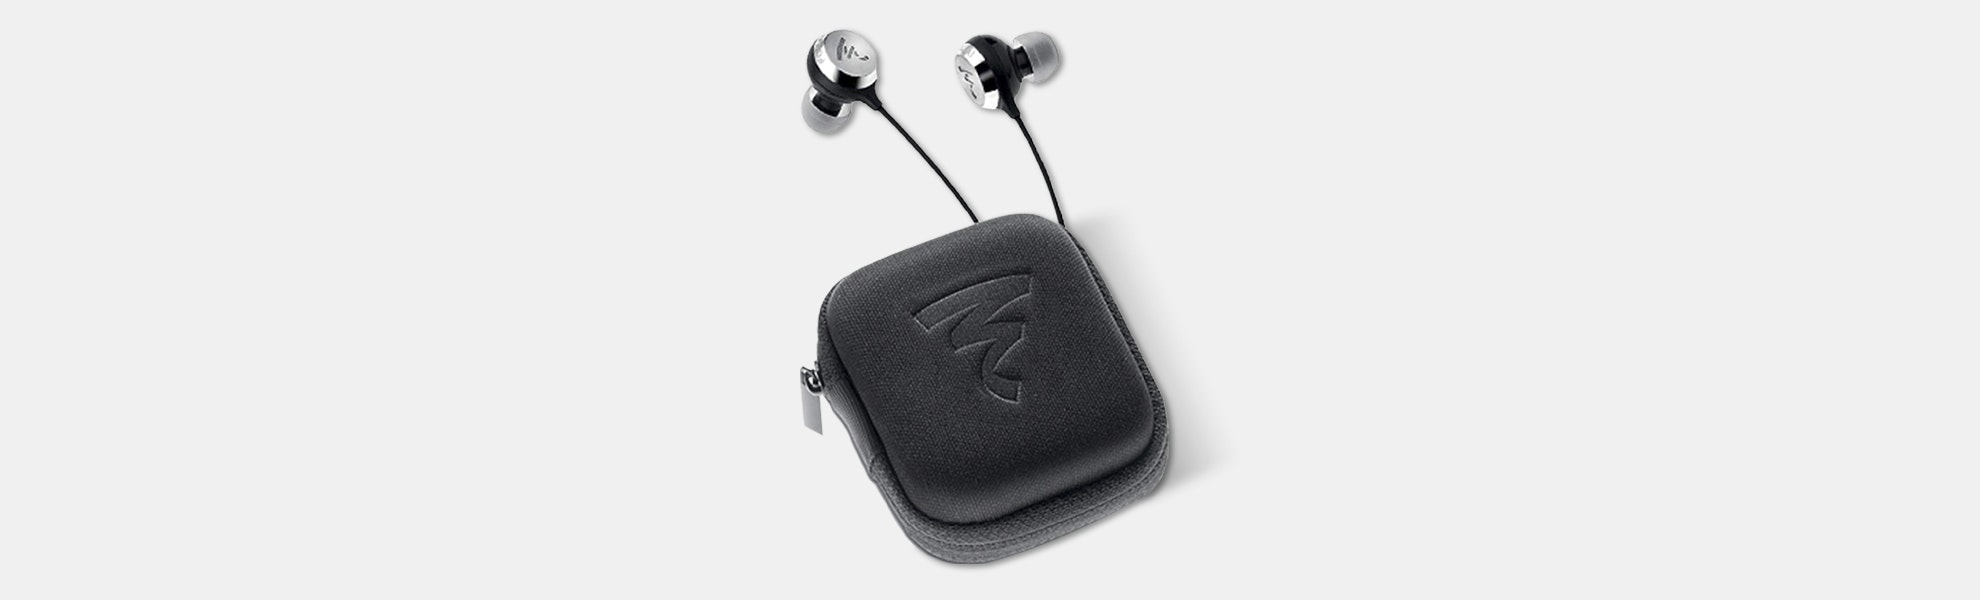 Focal Sphear S High-Definition Earphones